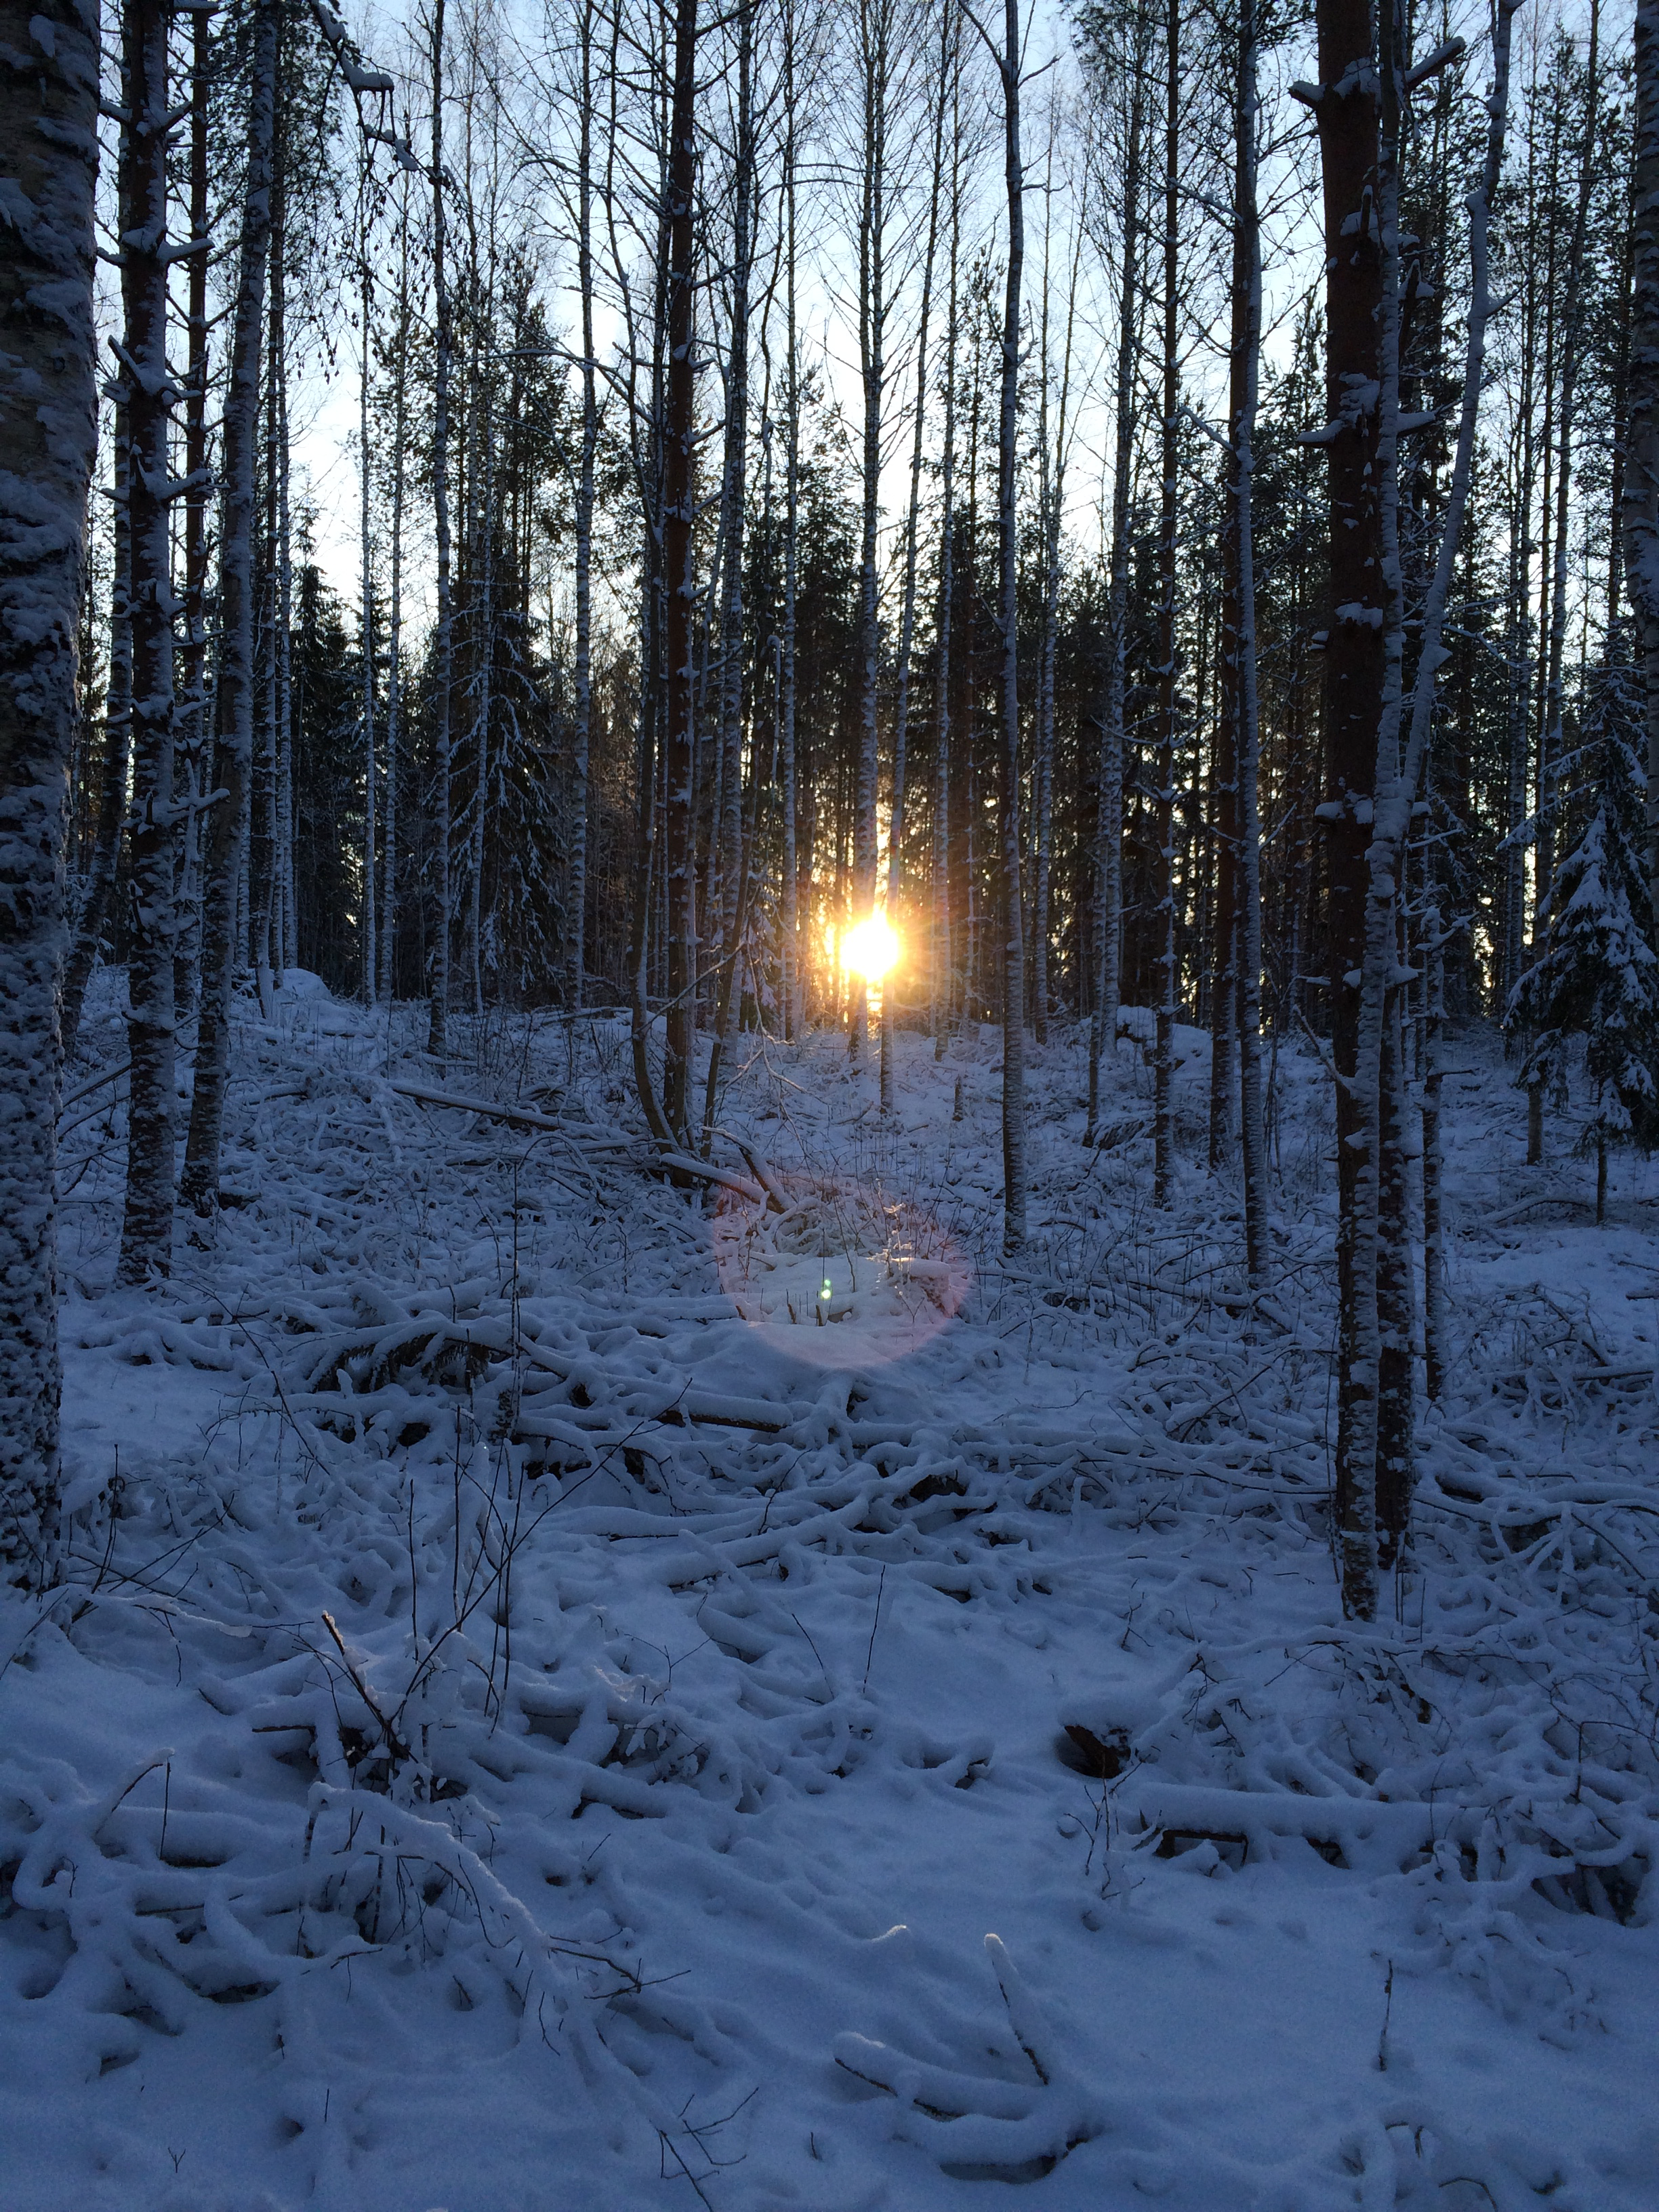 Finland In Winter.png